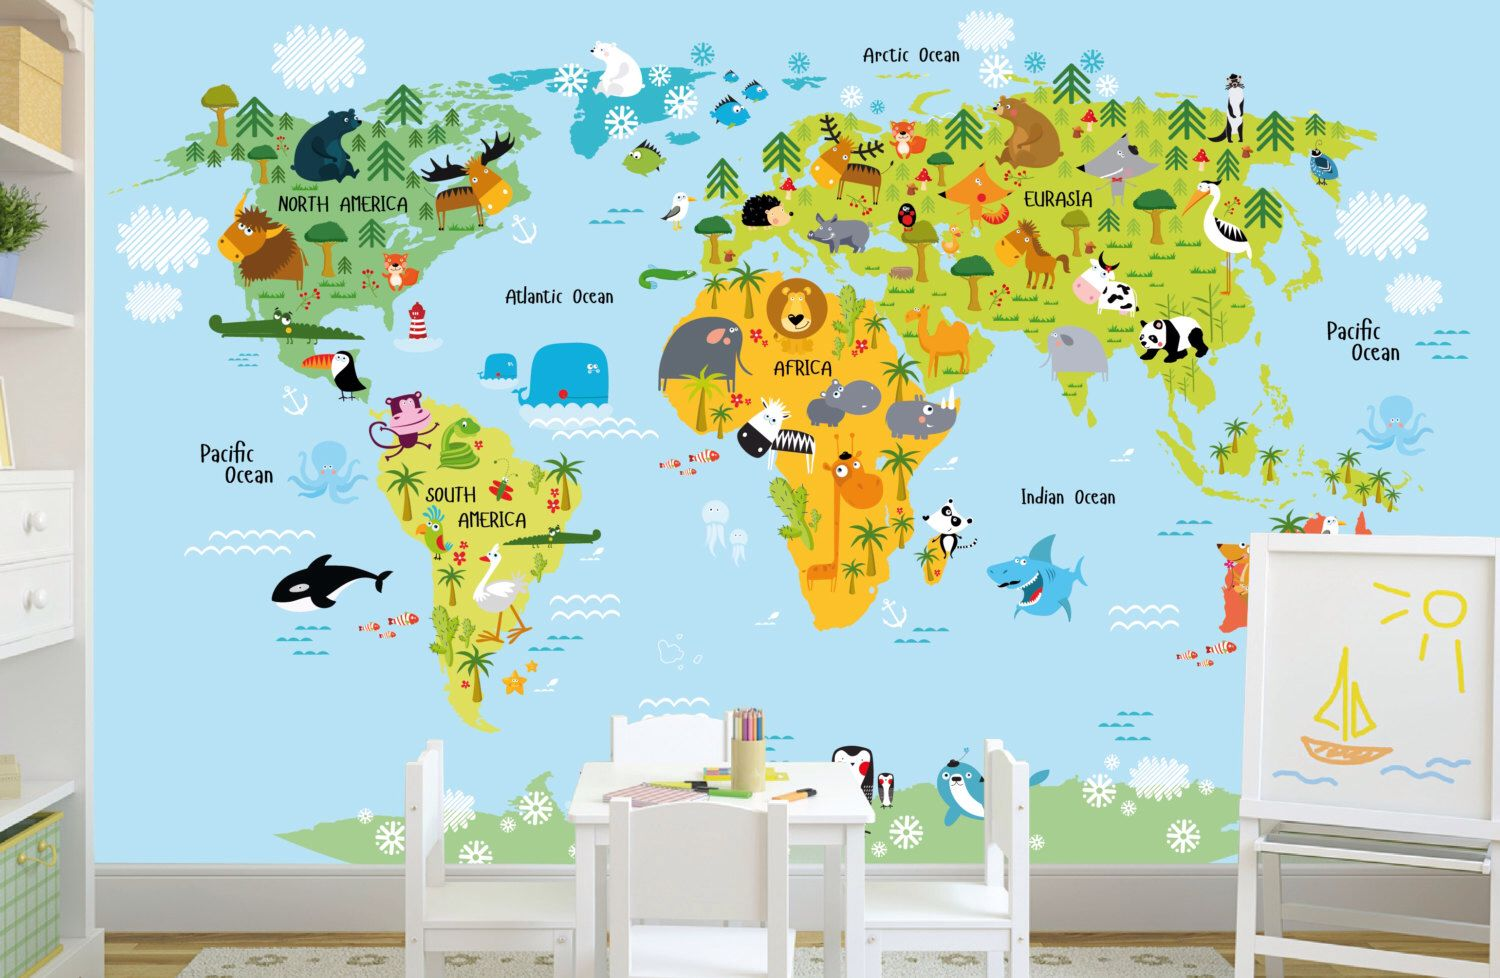 Self adhesive removable wallpaper map kids wall mural animals self adhesive removable wallpaper map kids wall mural animals world map wallpaper gumiabroncs Image collections